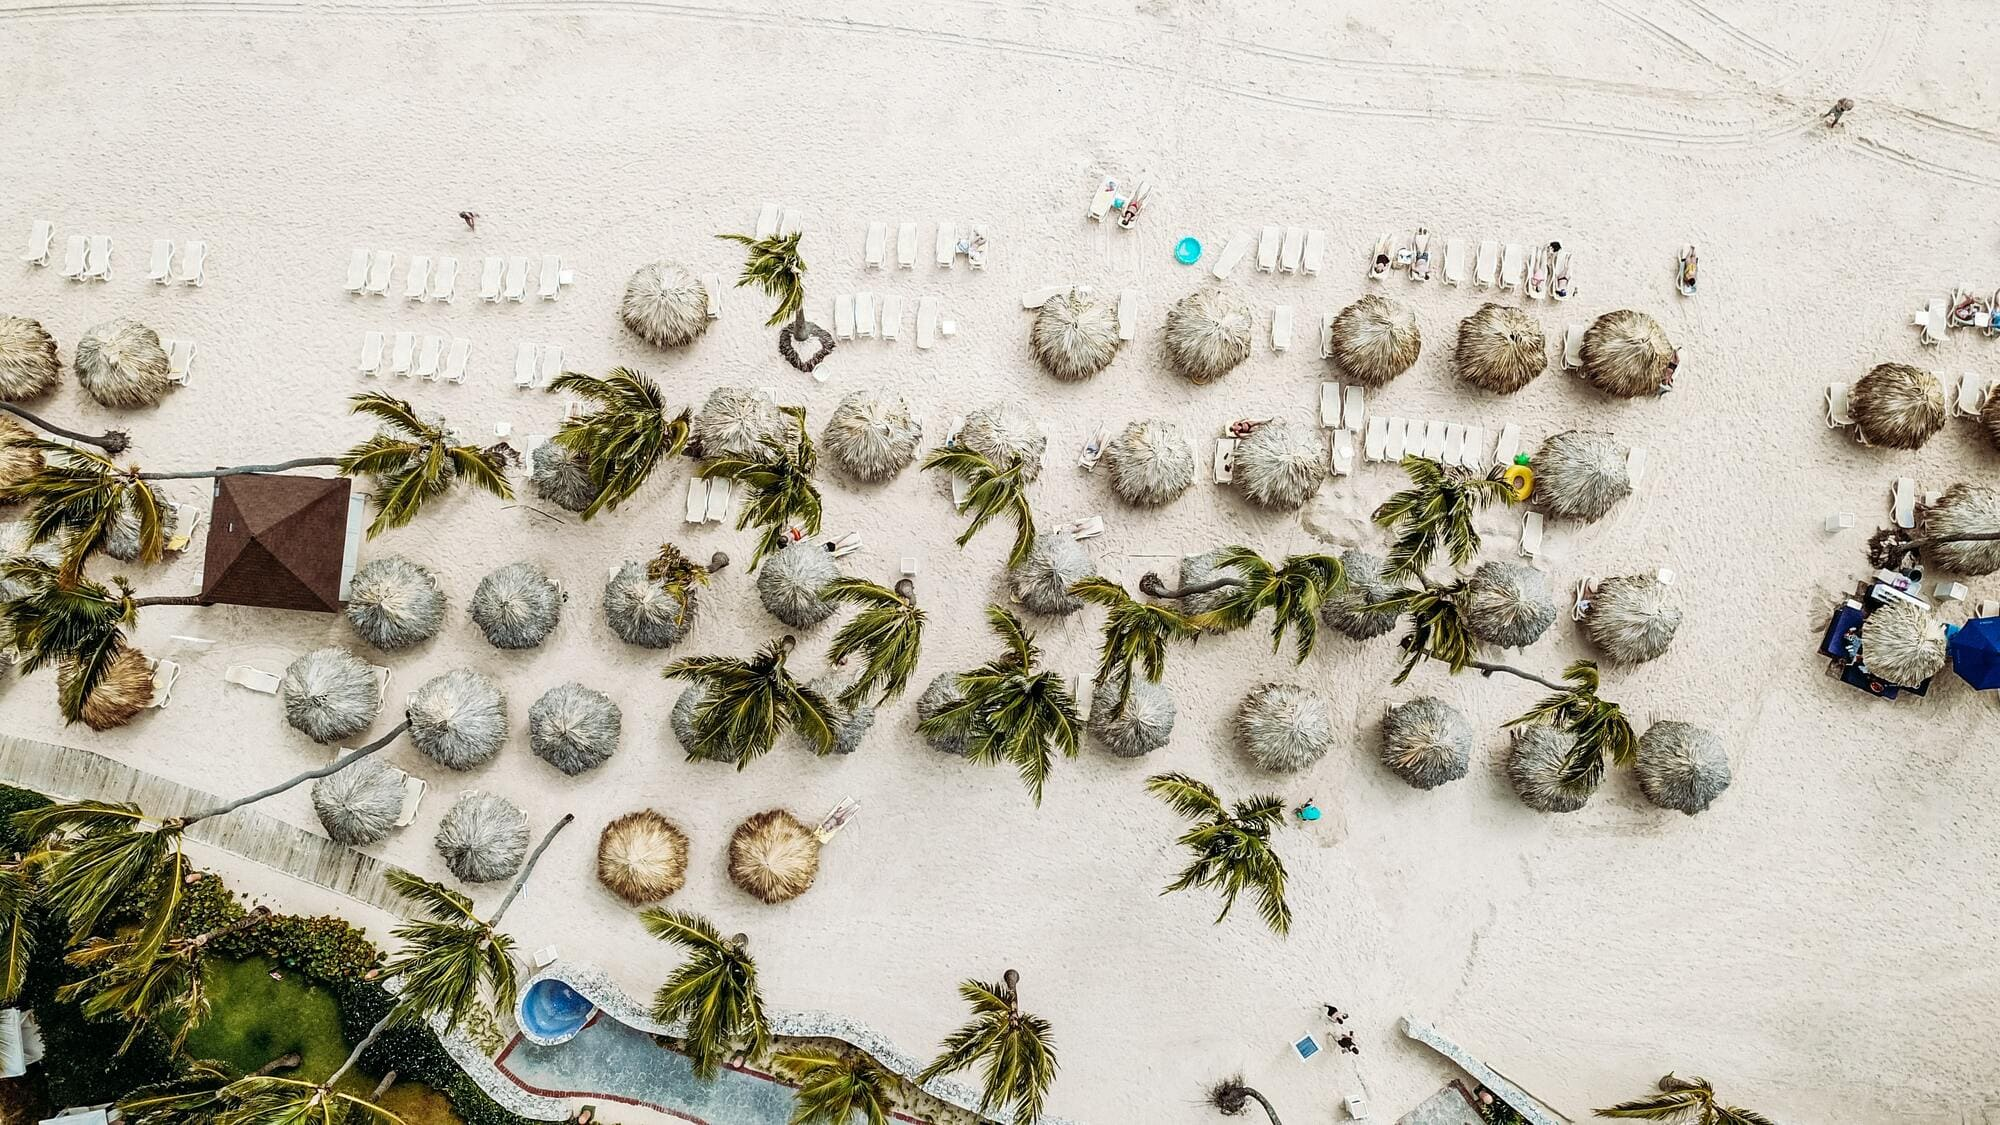 A drone shot from the beach in the Dominican Republic